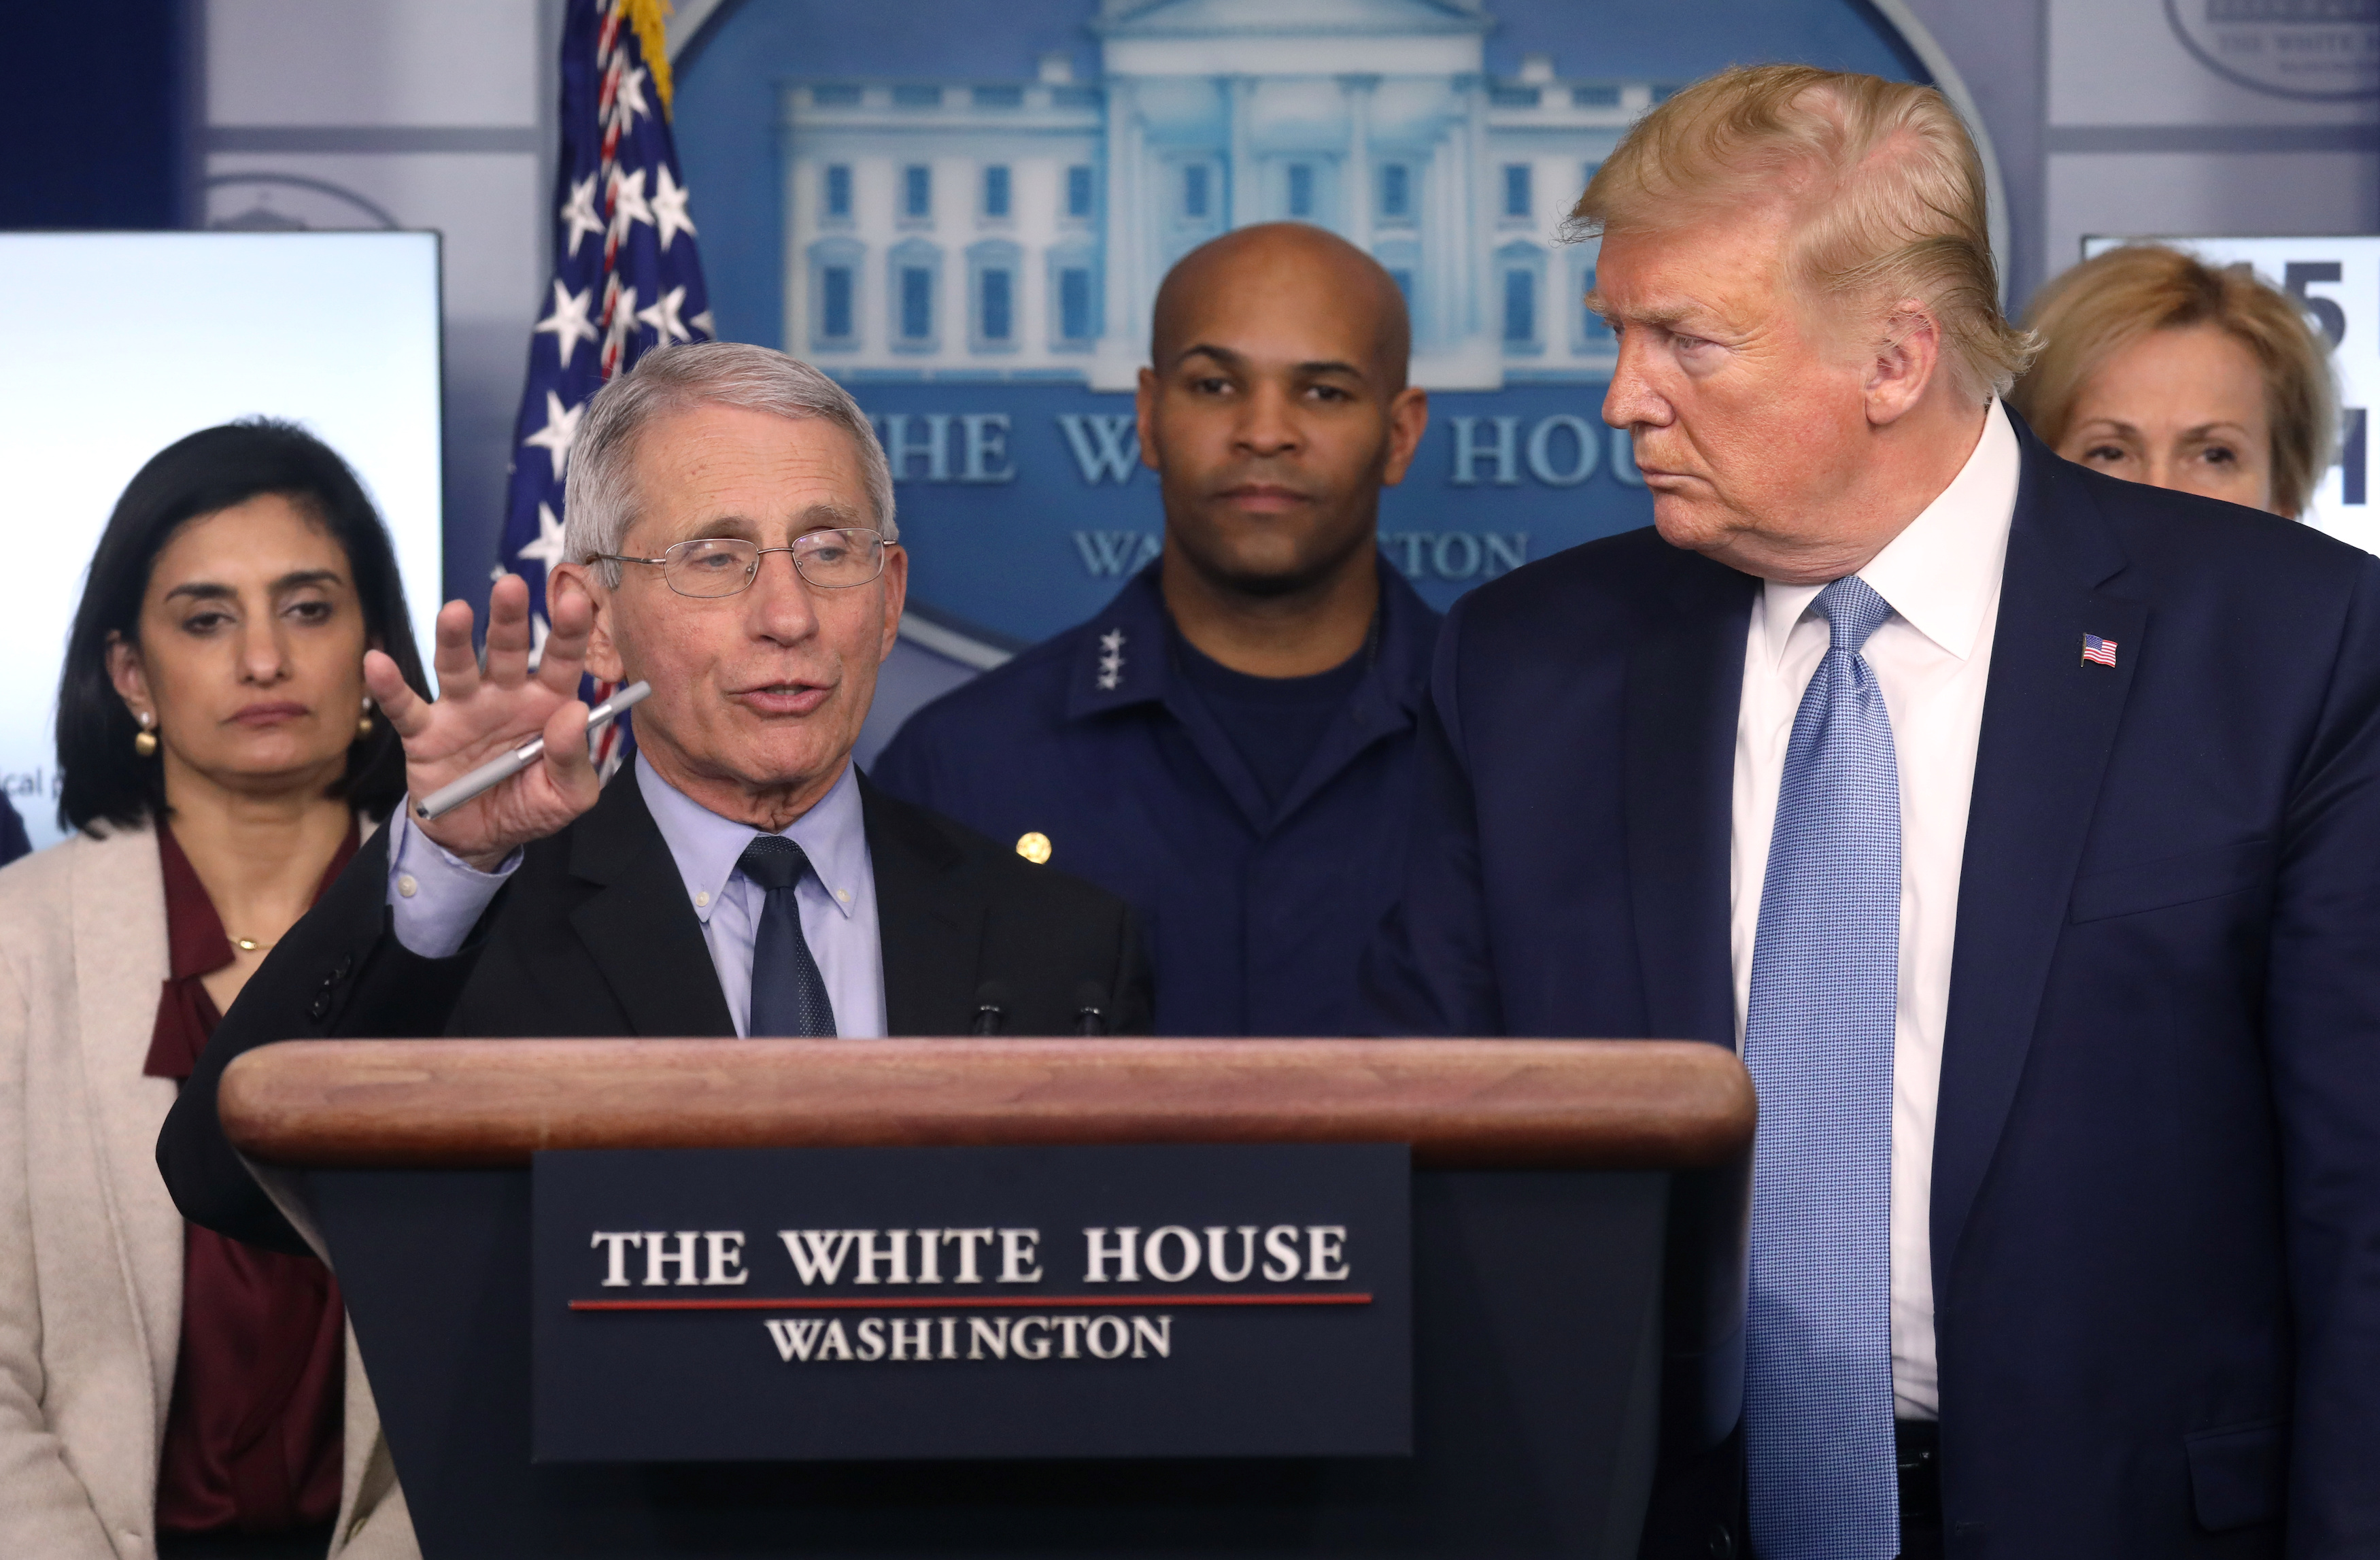 Trump listens to Fauci